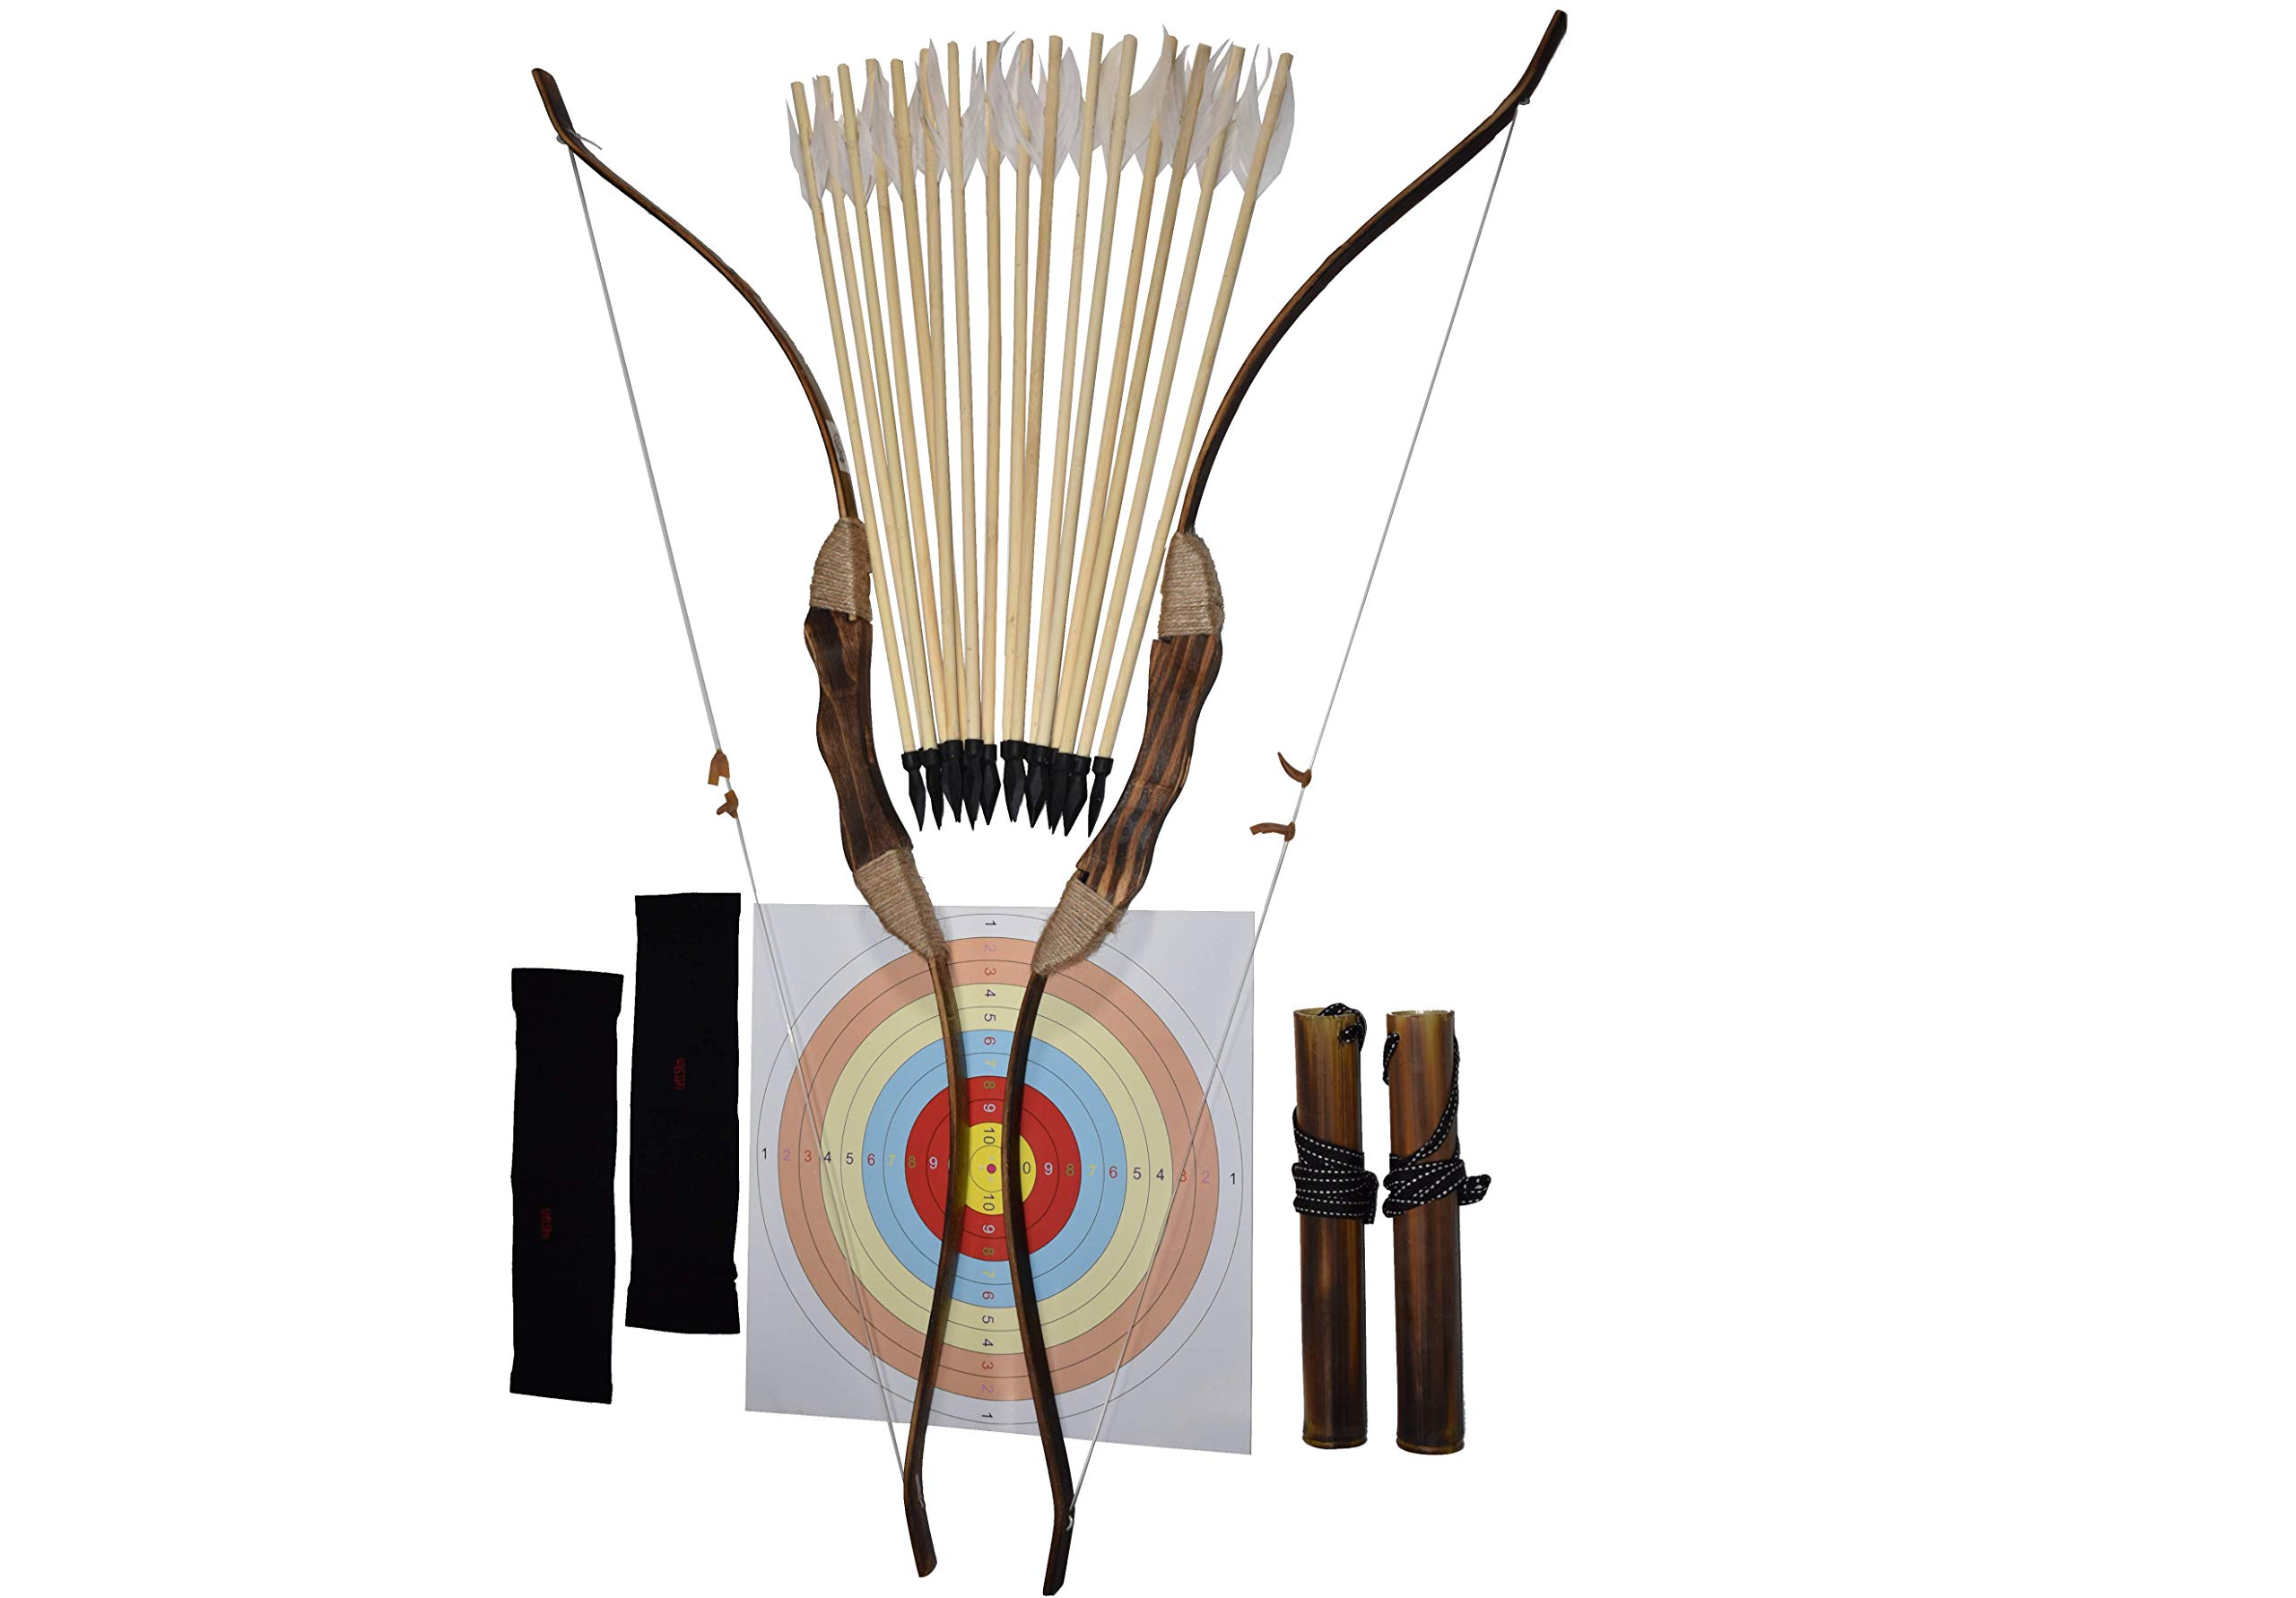 FSFF Enhanced Wooden Bow and Arrow for Kids 2-Bows 2-Four Arrow quivers 16-Arrows w/ Feathers 10-Large Targets & 2-armguards Great Archery Set for Youth boy / Girl Beginner Archery Set for Kids